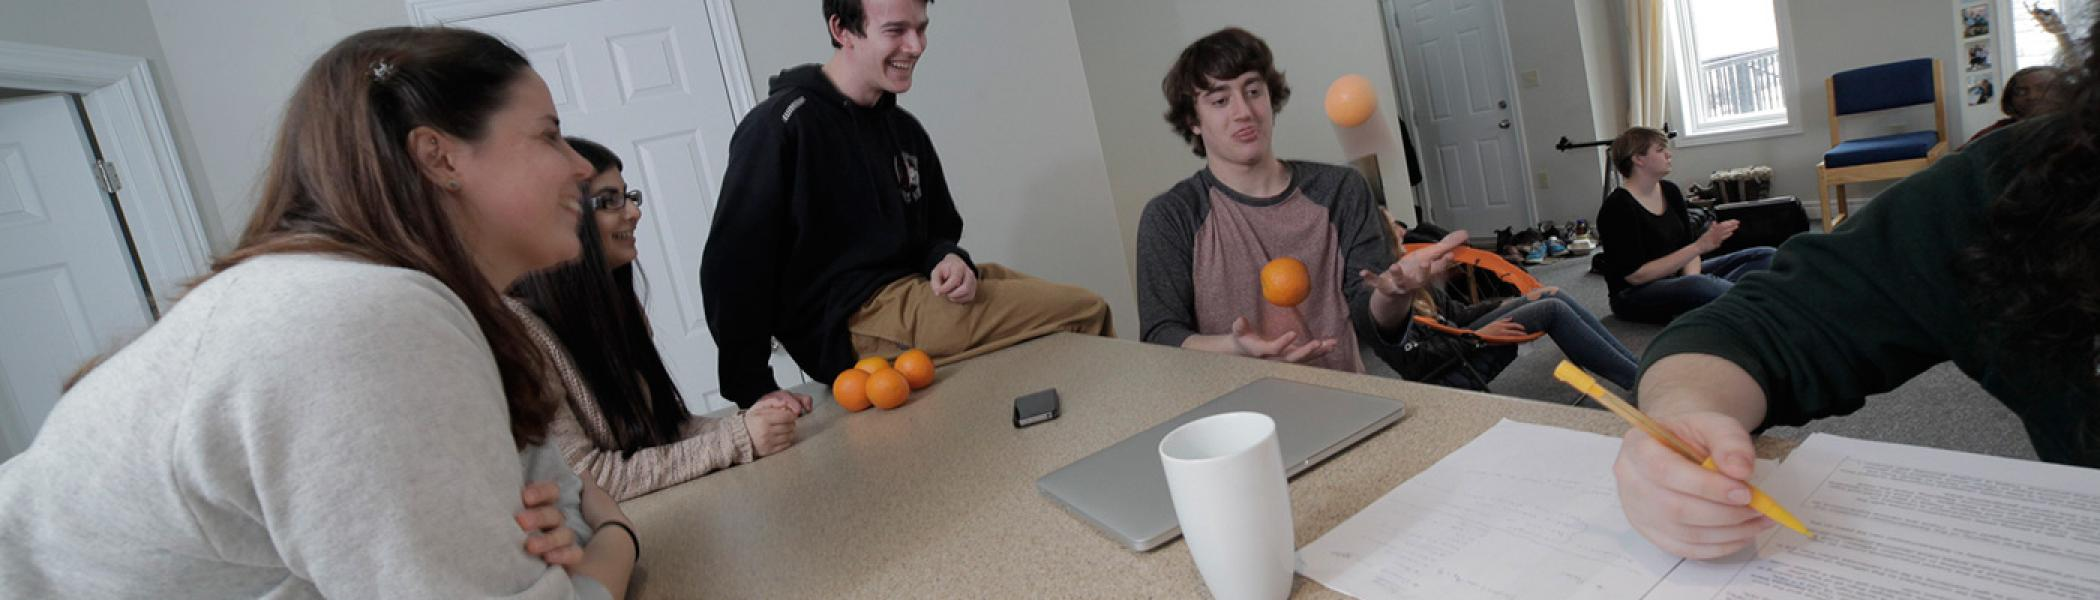 Students gathered in kitchen, one student juggling, others watching